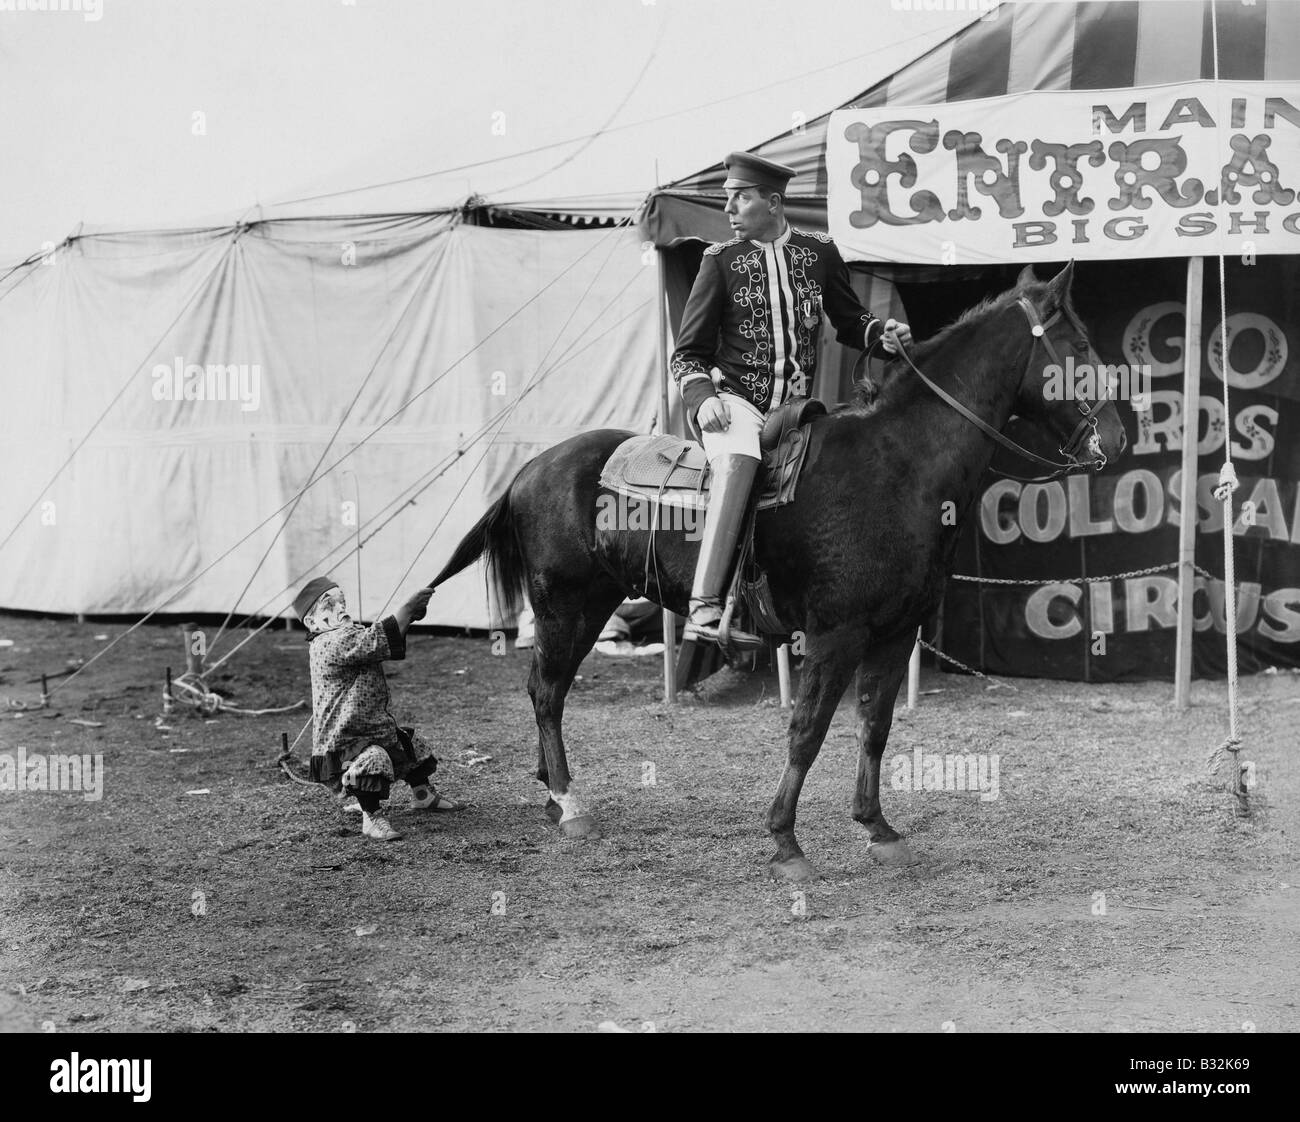 Circus performer pulling horses tail - Stock Image